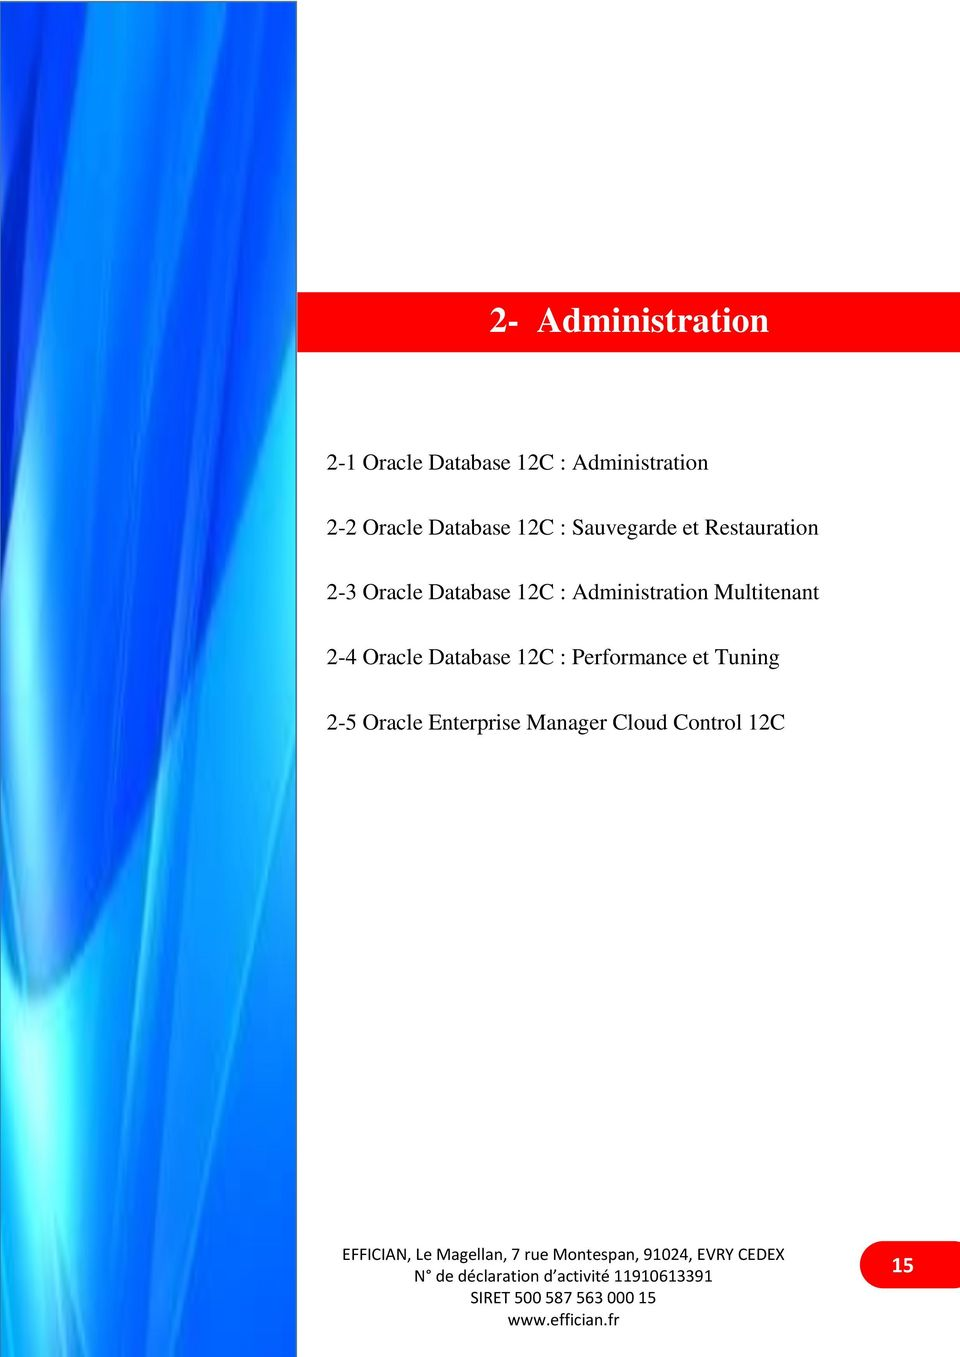 Database 12C : Administration Multitenant 2-4 Oracle Database 12C